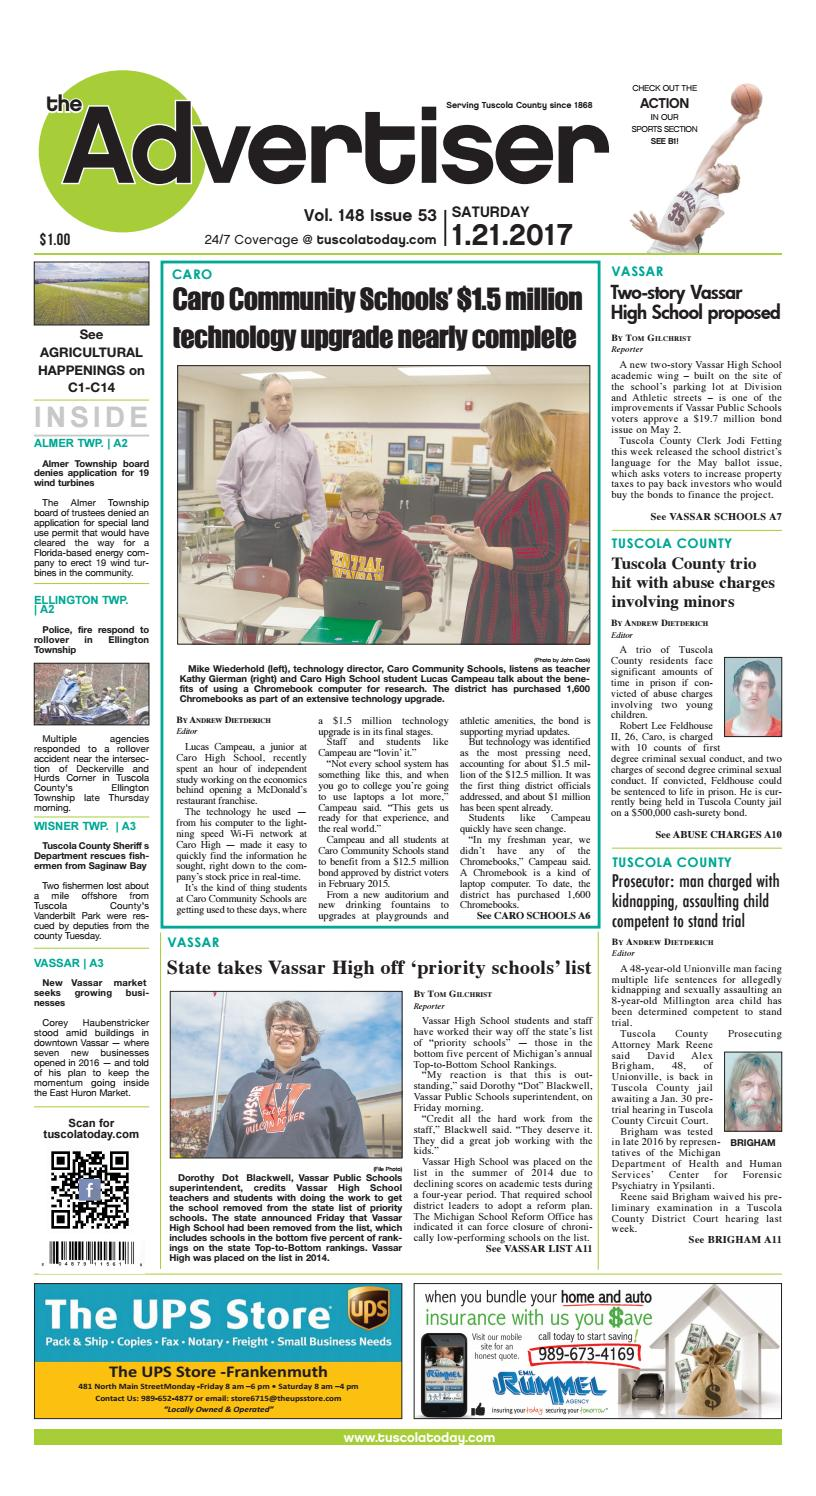 cc8163ebd068 Tca 1 21 17 all pages by Tuscola County Advertiser - issuu